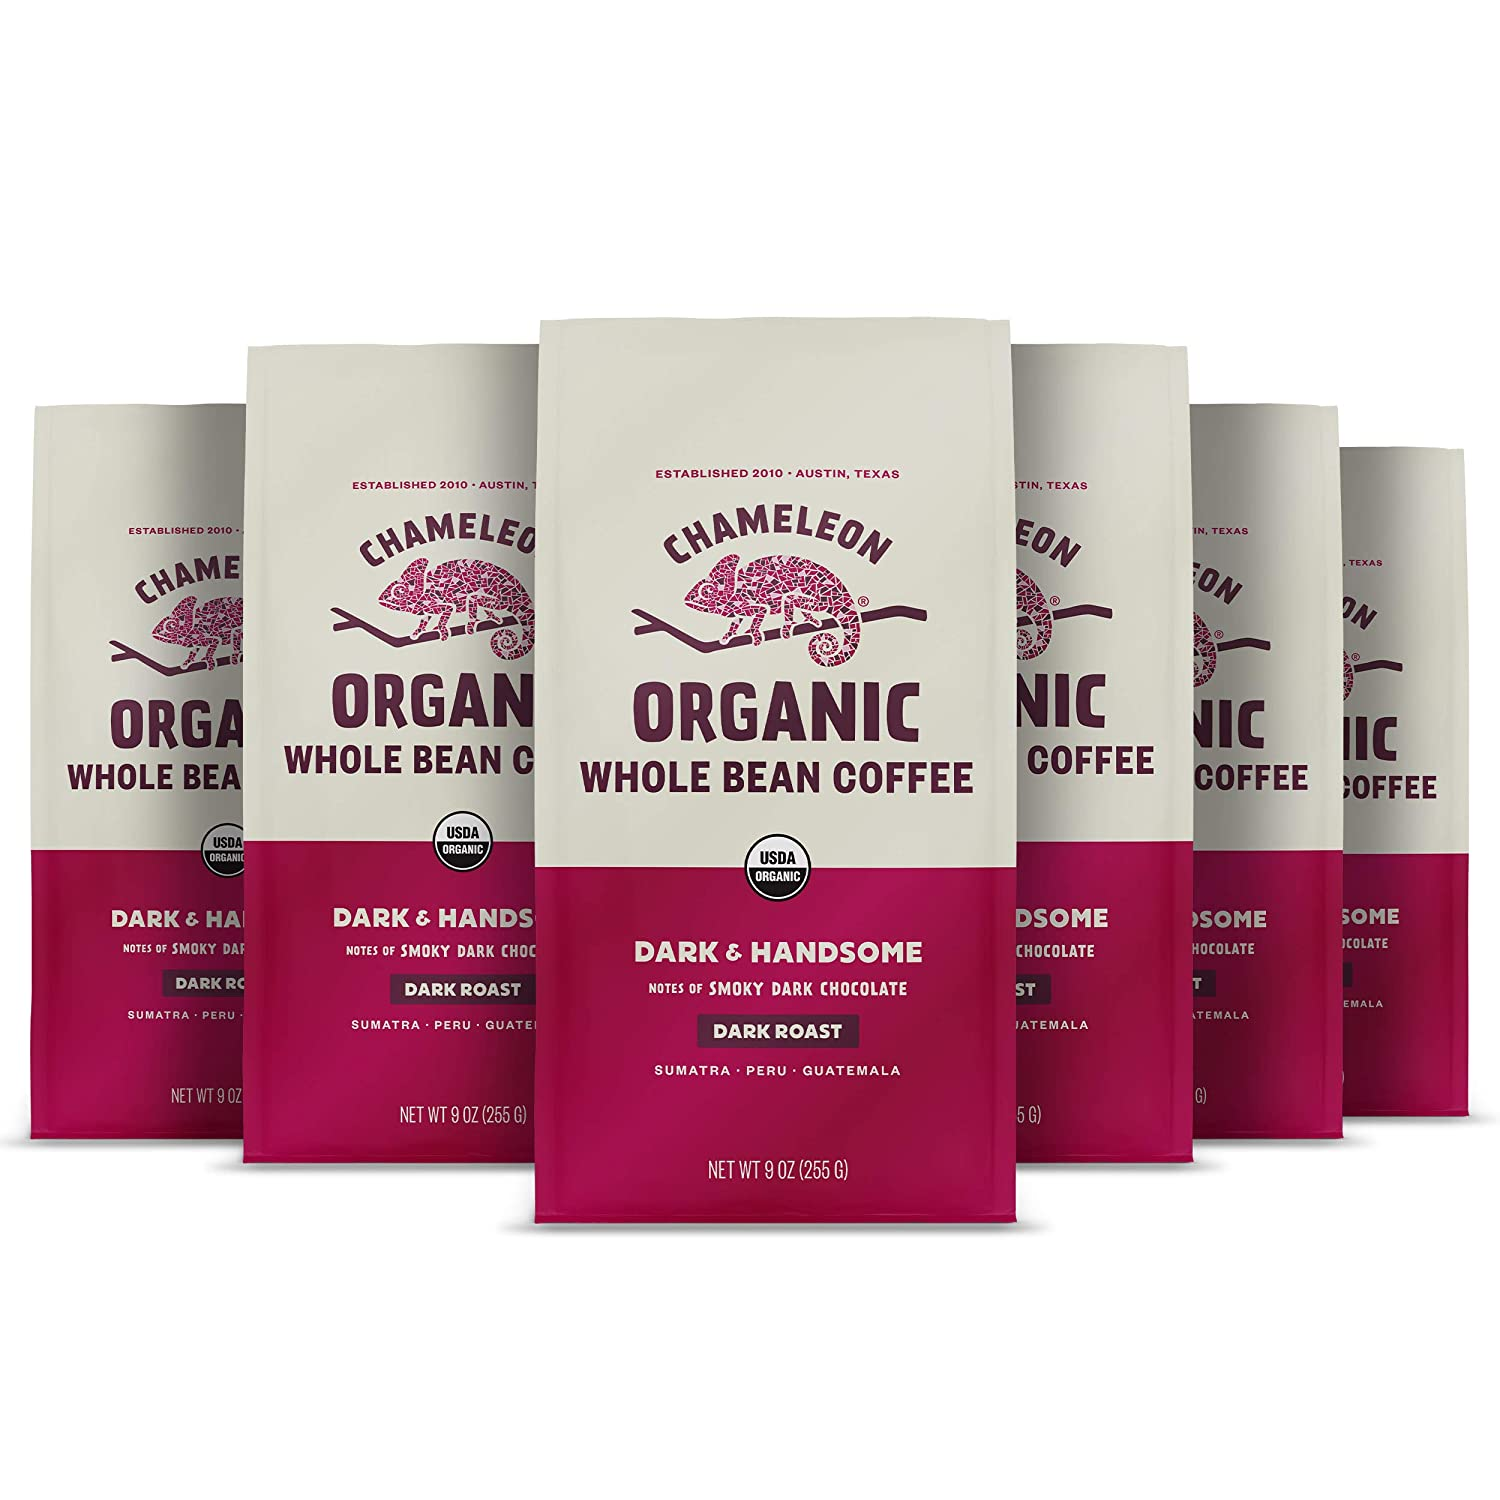 Chameleon Organic Max Manufacturer OFFicial shop 88% OFF Whole Bean Coffee Dark Hand Chocolate Roast